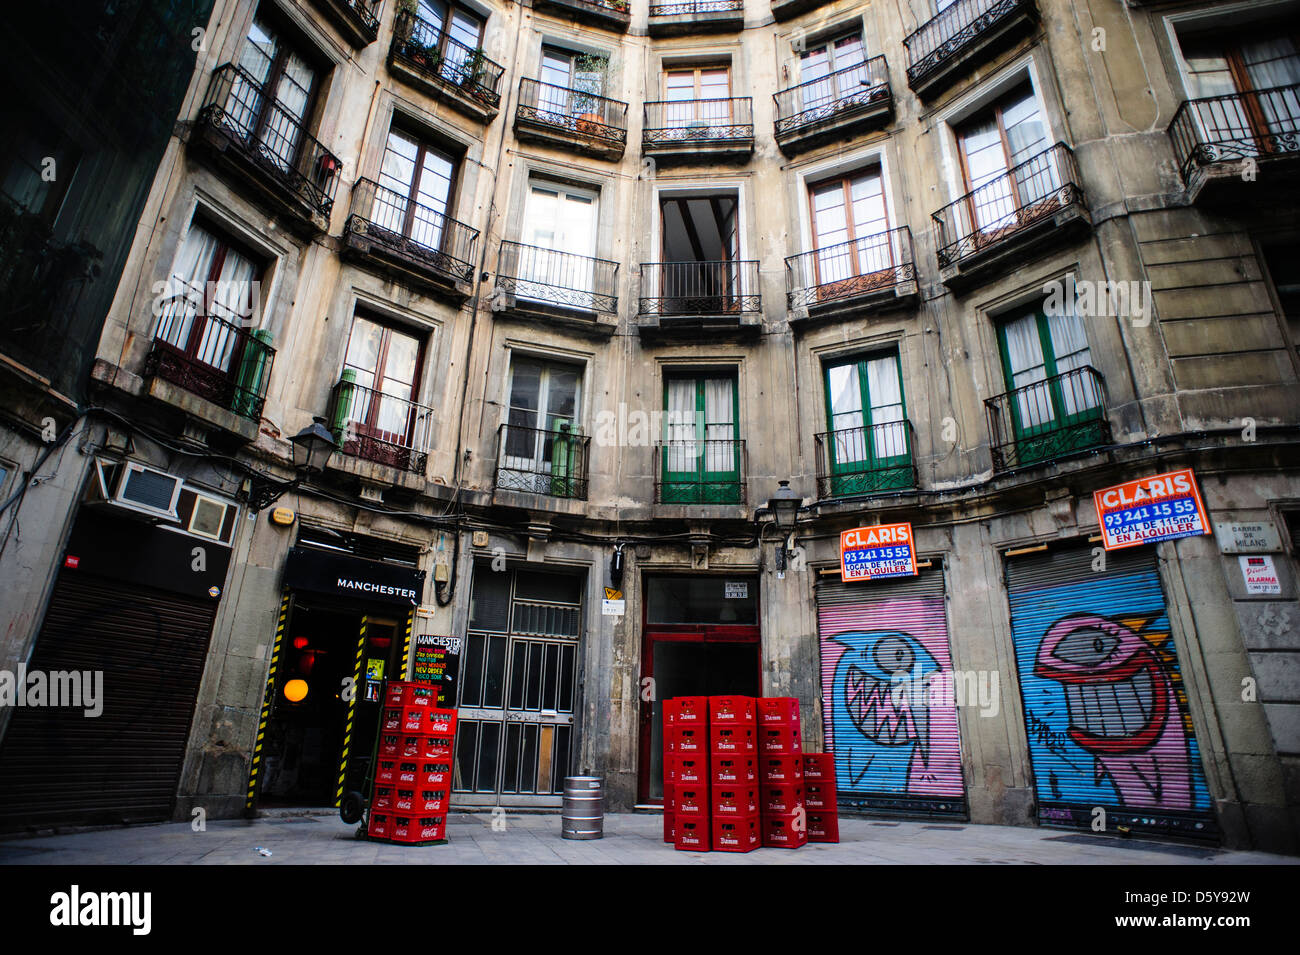 Traditional street with balconies in the gothic area of Barcelona. - Stock Image